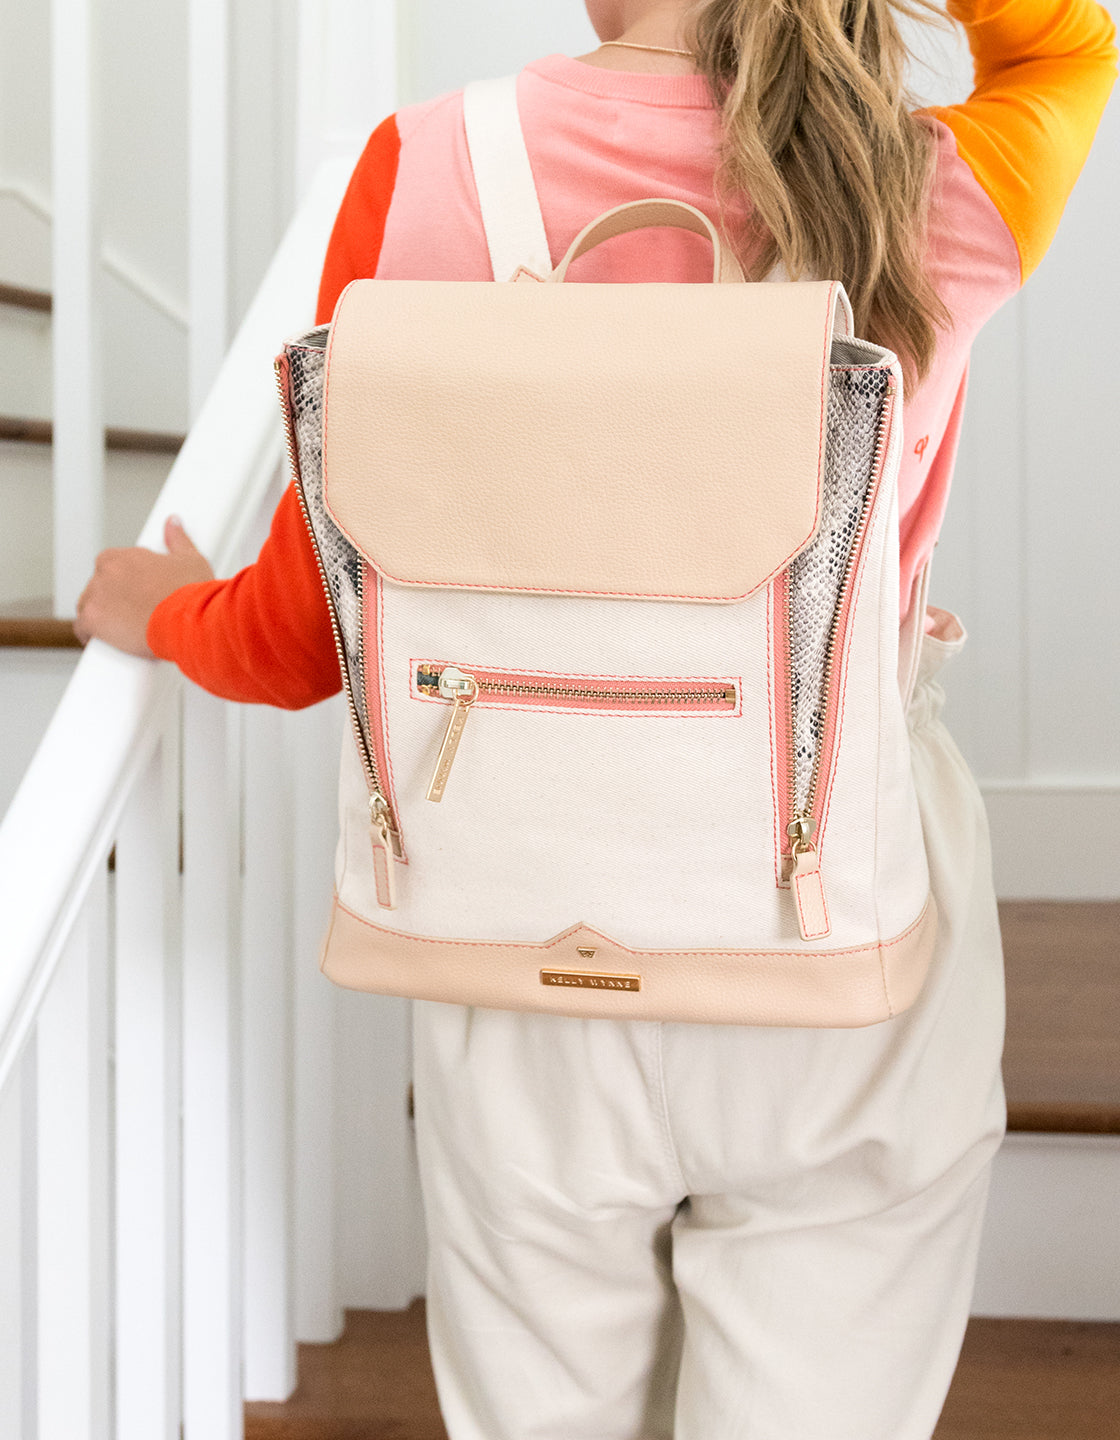 Bon Voyage Backpack in Sand